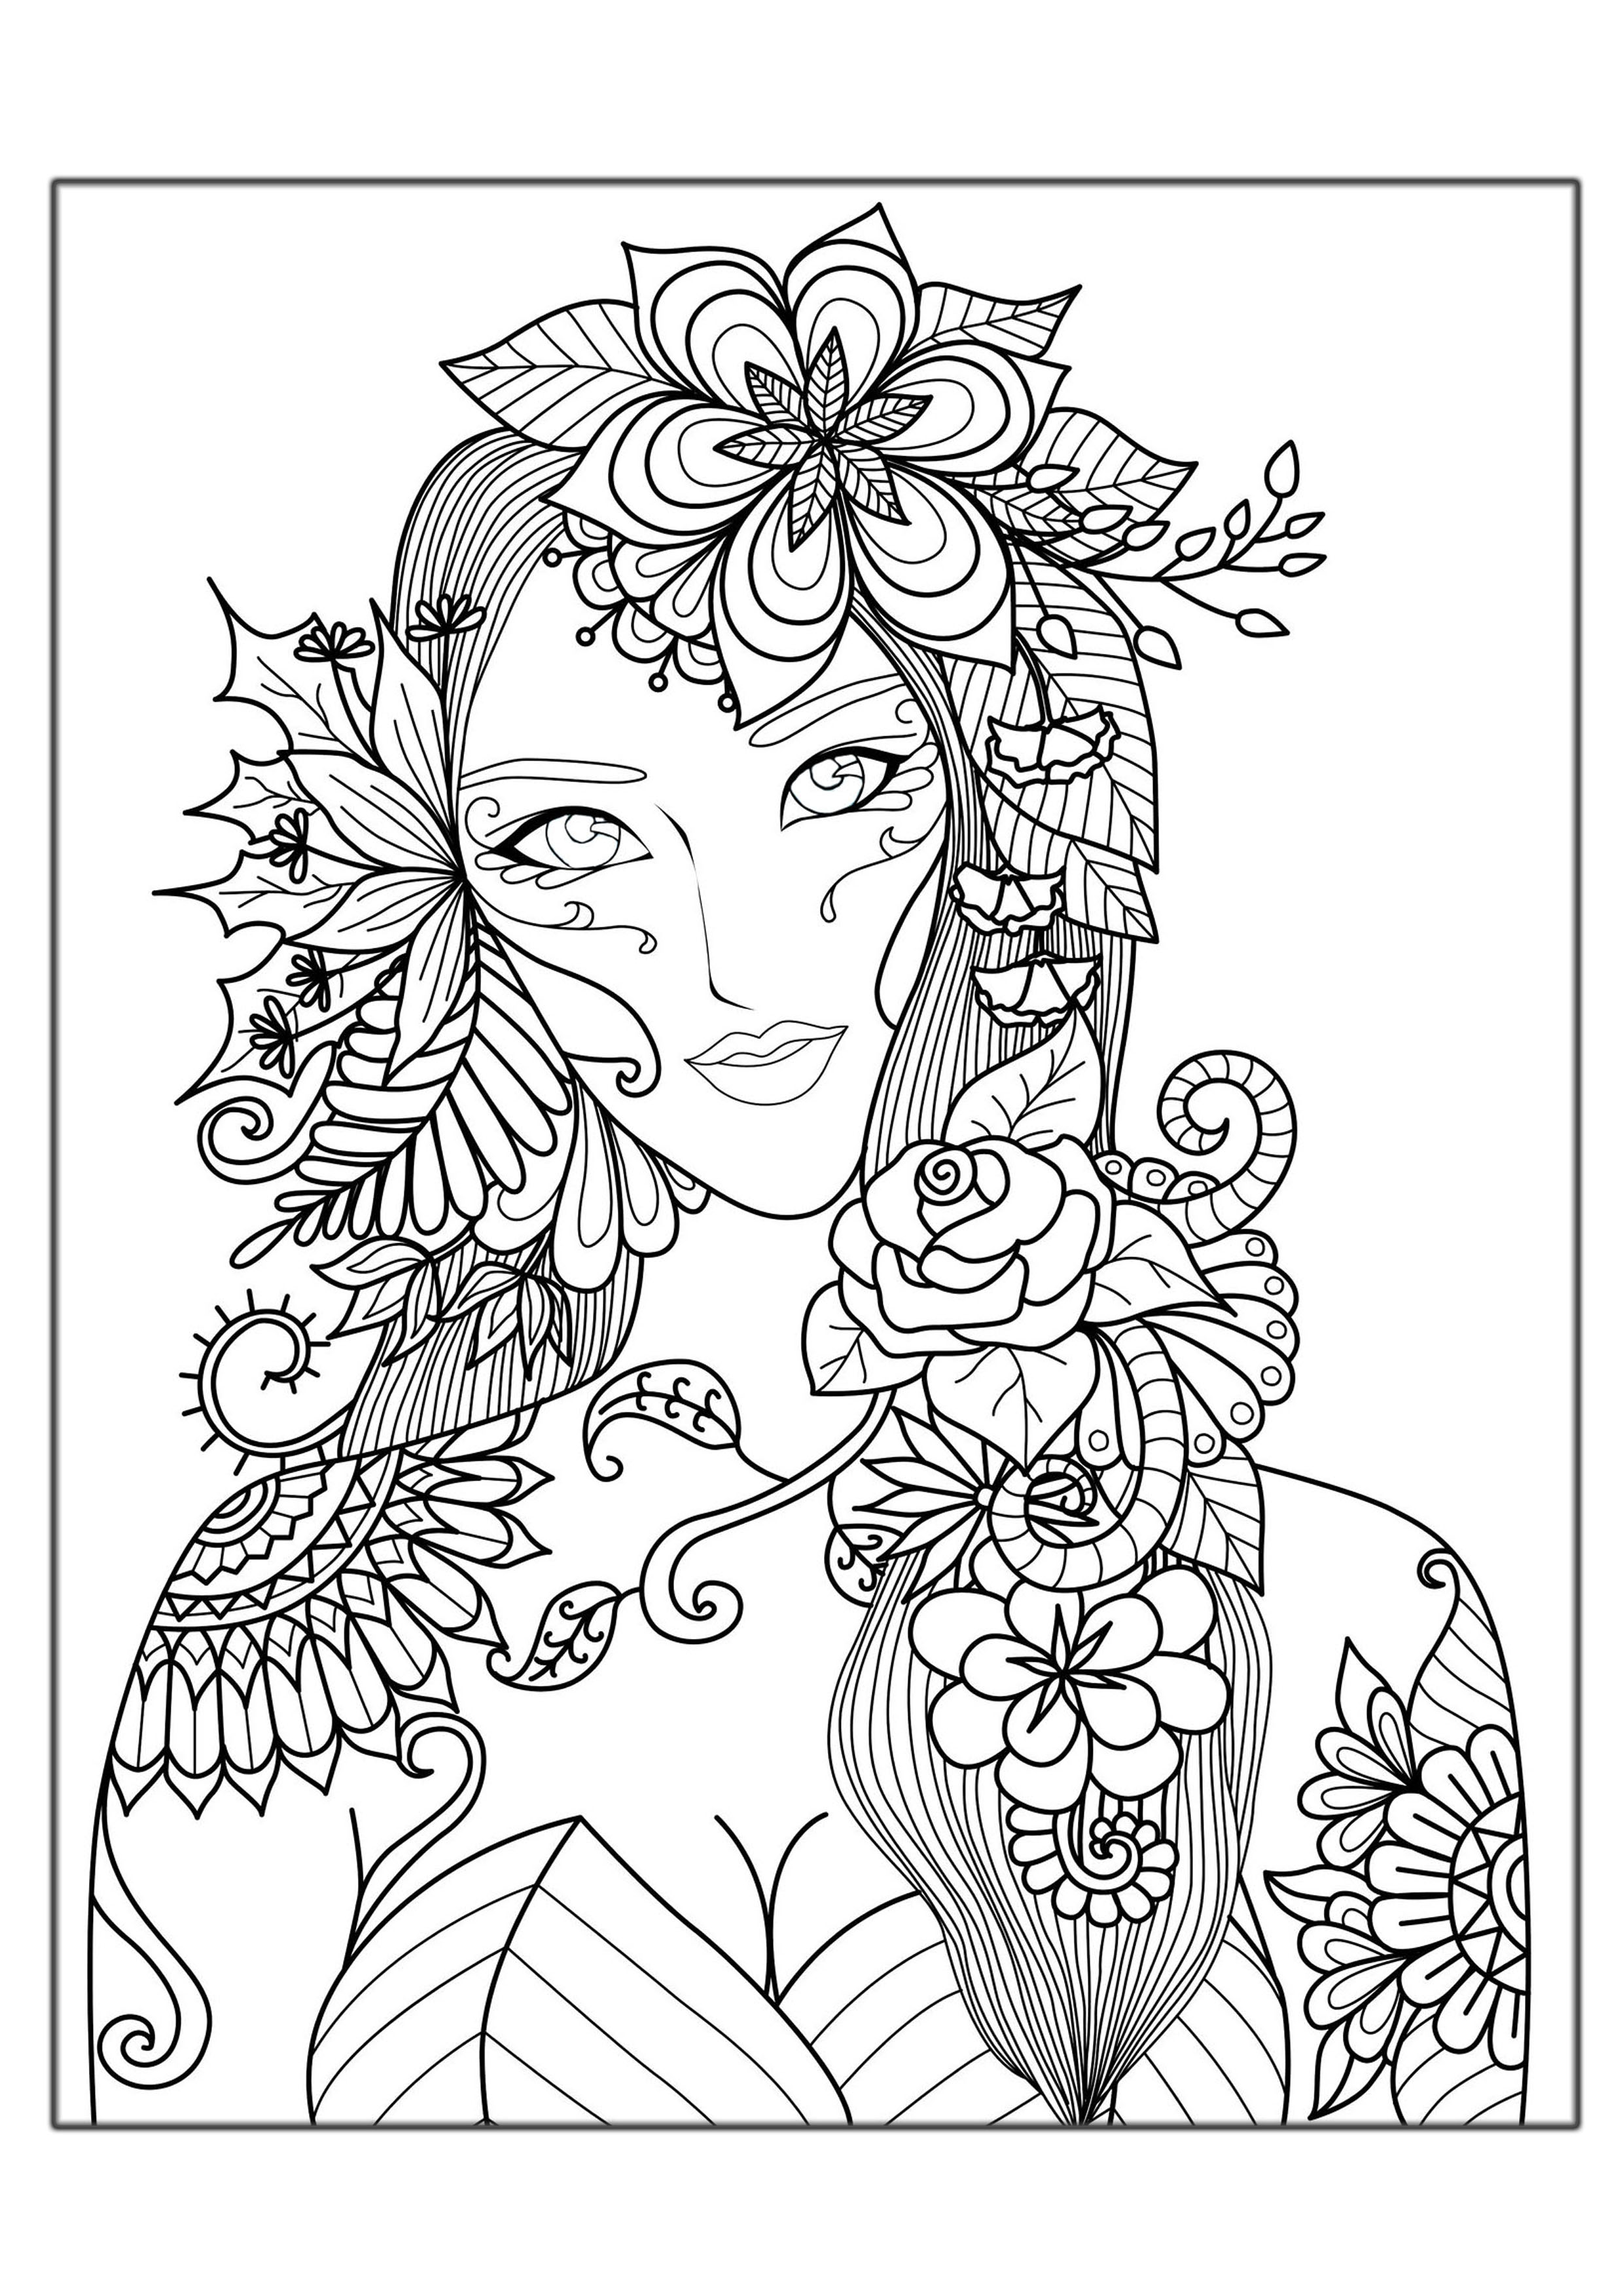 for coloring free printable goofy coloring pages for kids coloring for